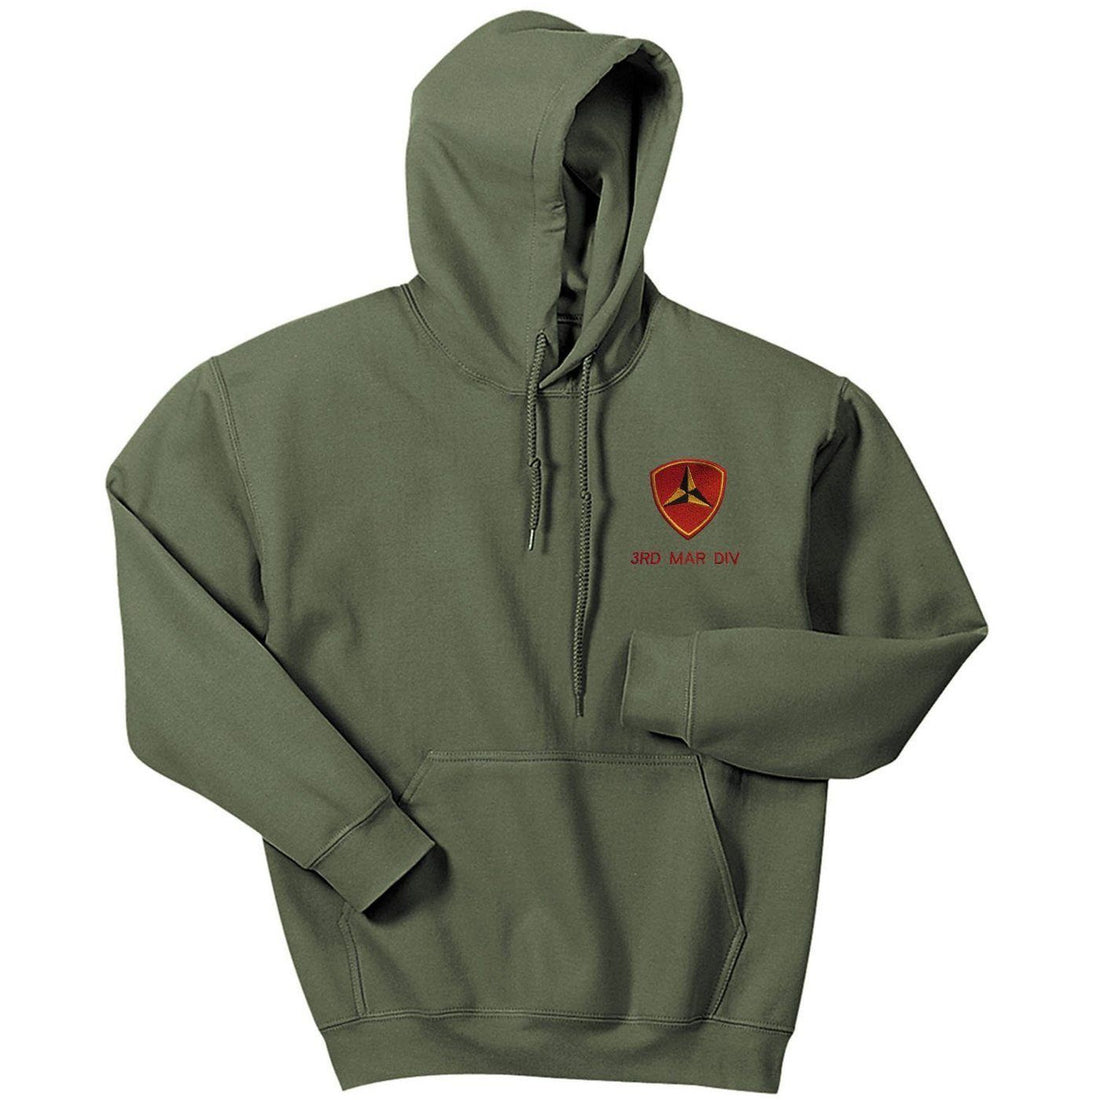 3rd Mar Div Embroidered Hoodie - Marine Corps Direct